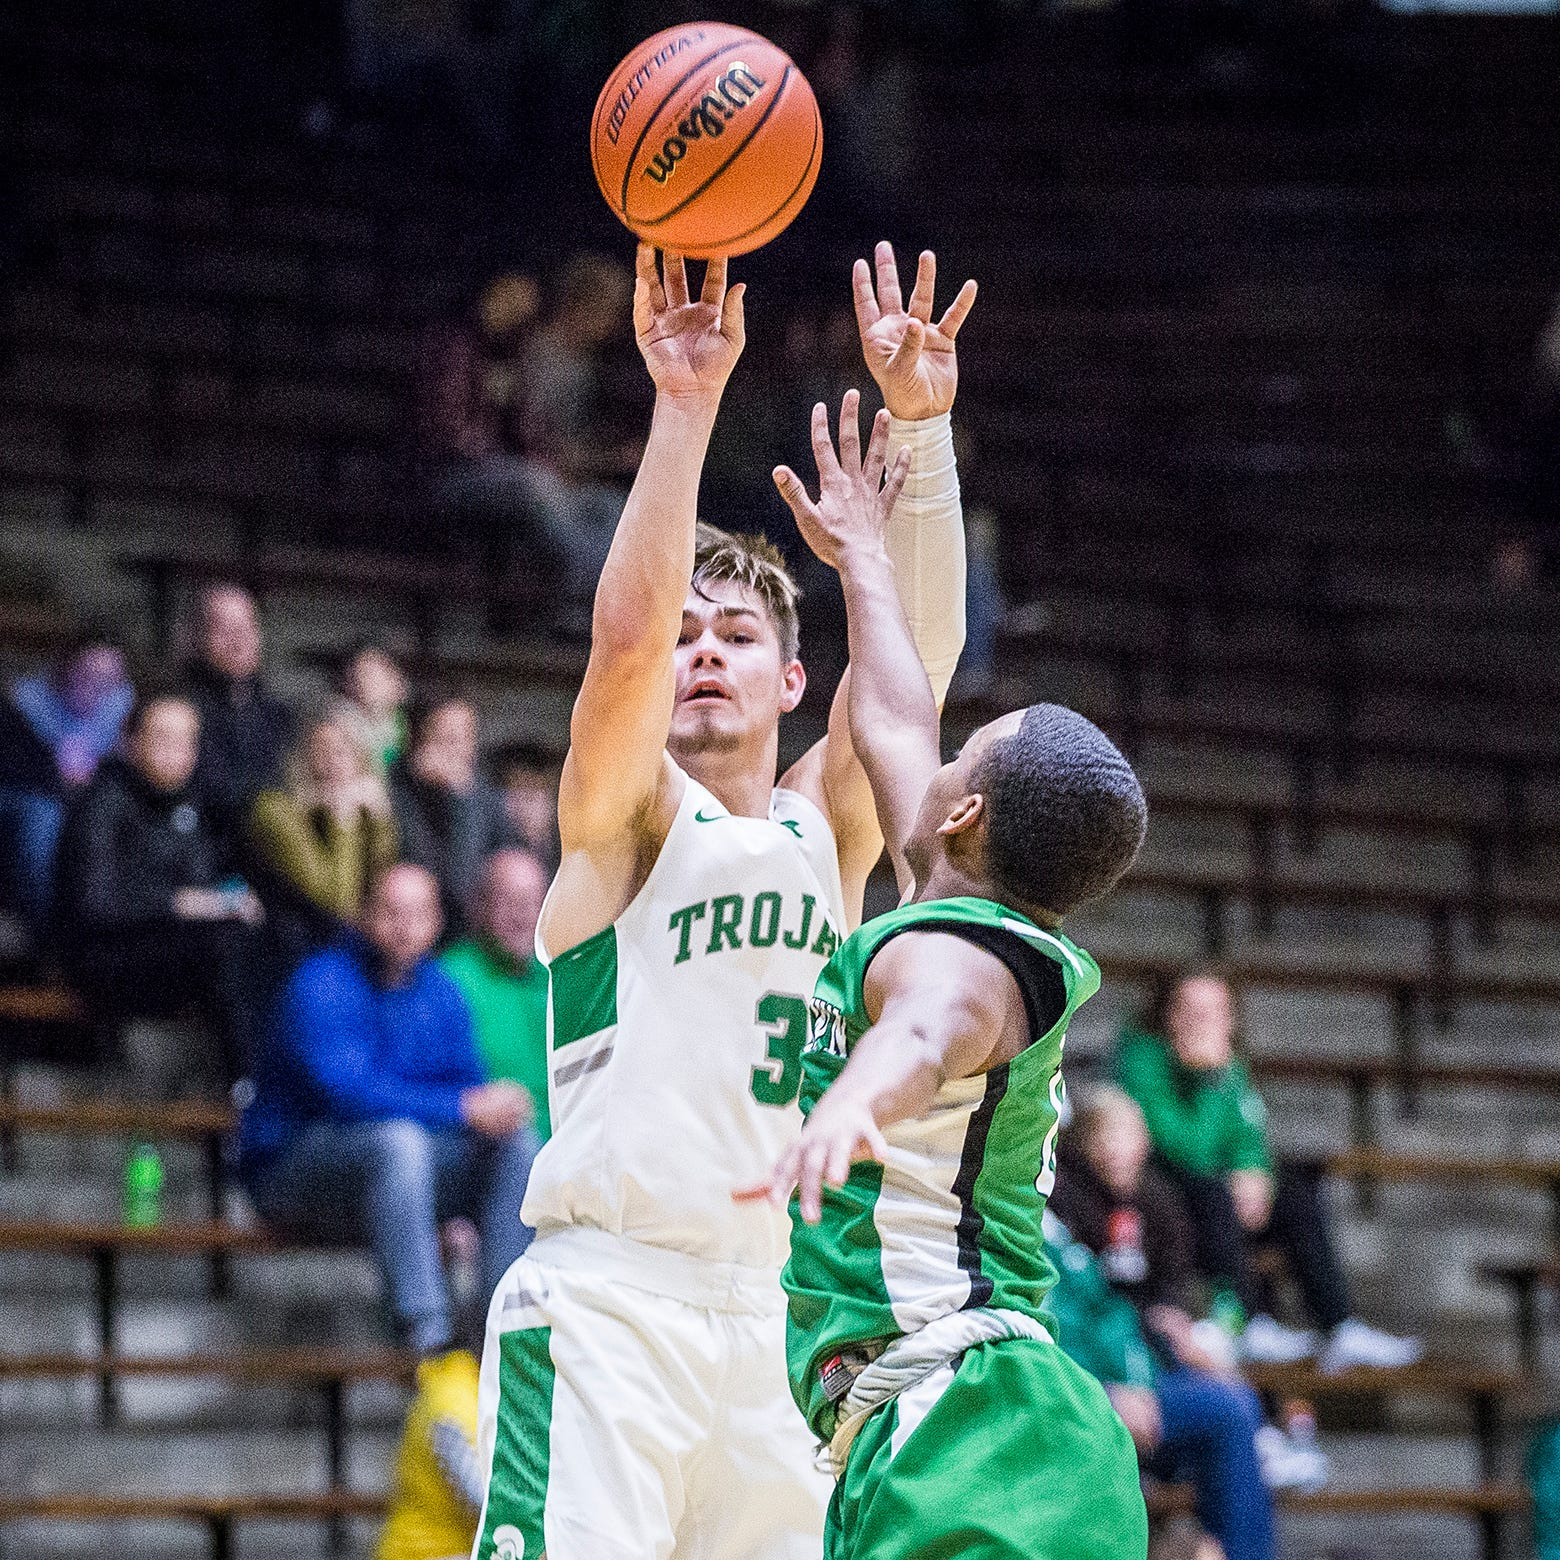 Luke Bumbalough climbing up New Castle all-time scoring list